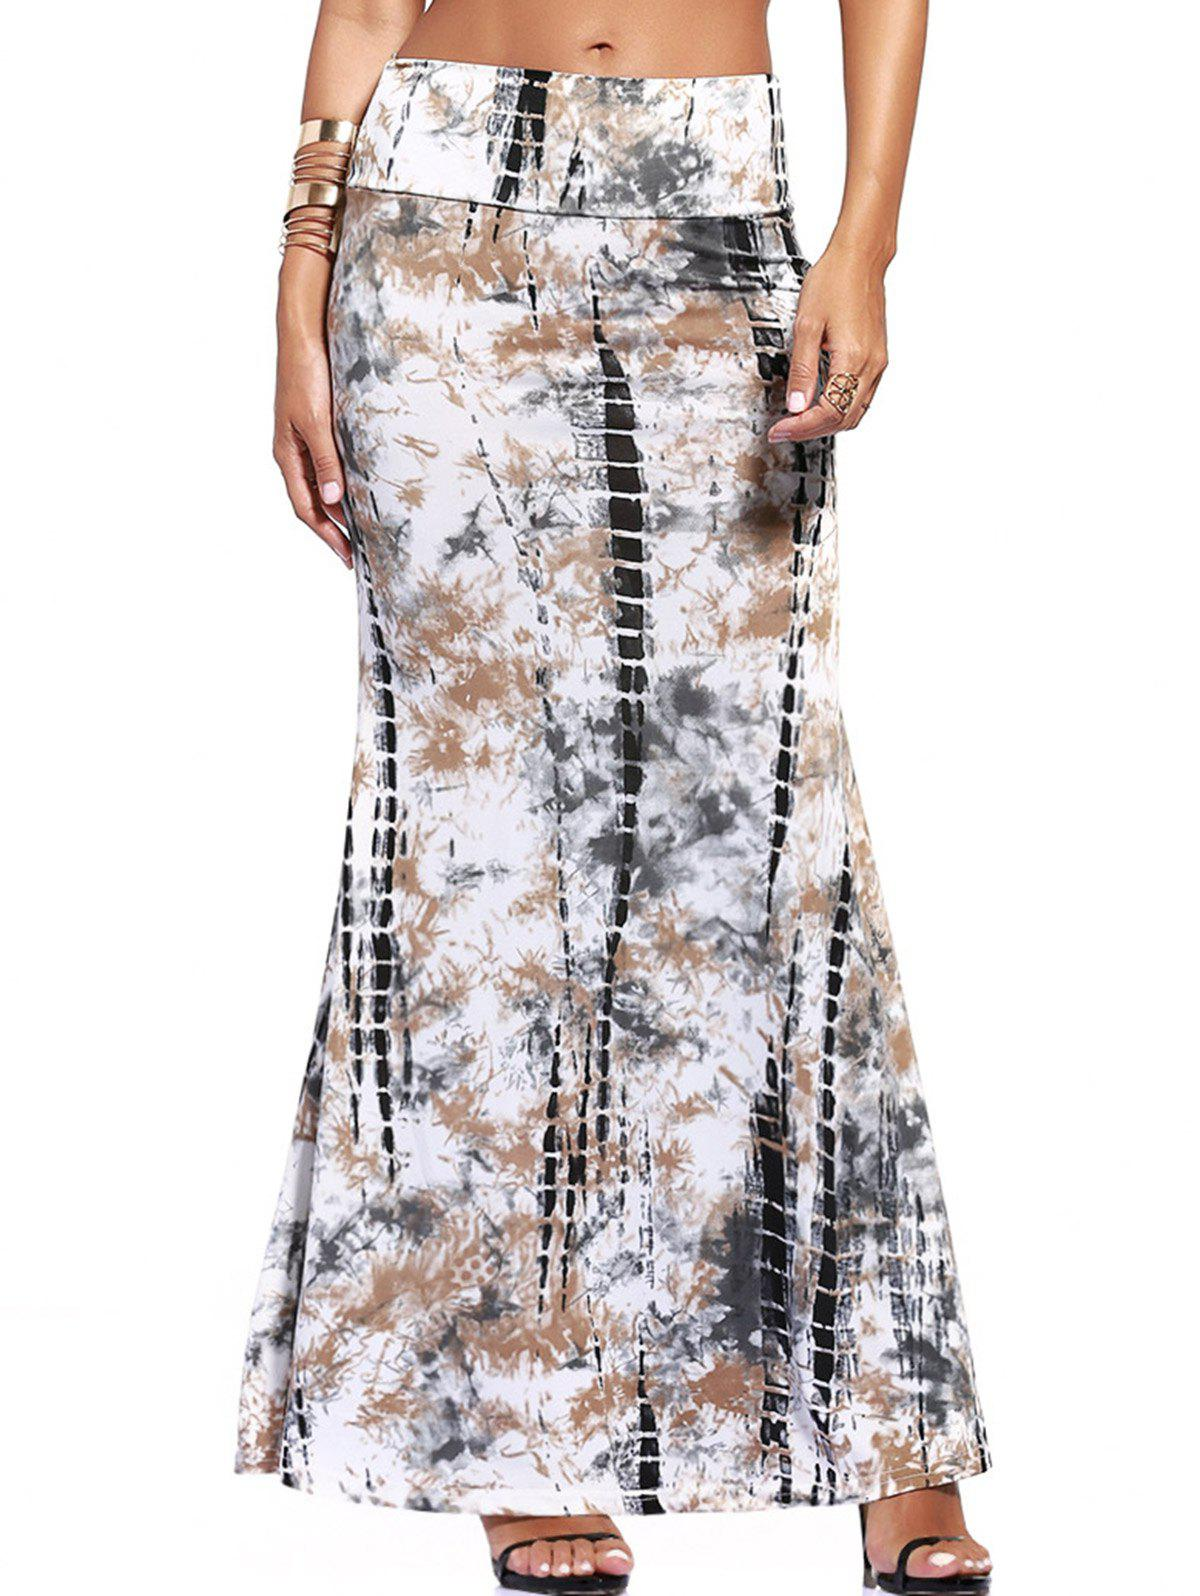 Ethnic Tie-Dyed Maxi Skirt For Women